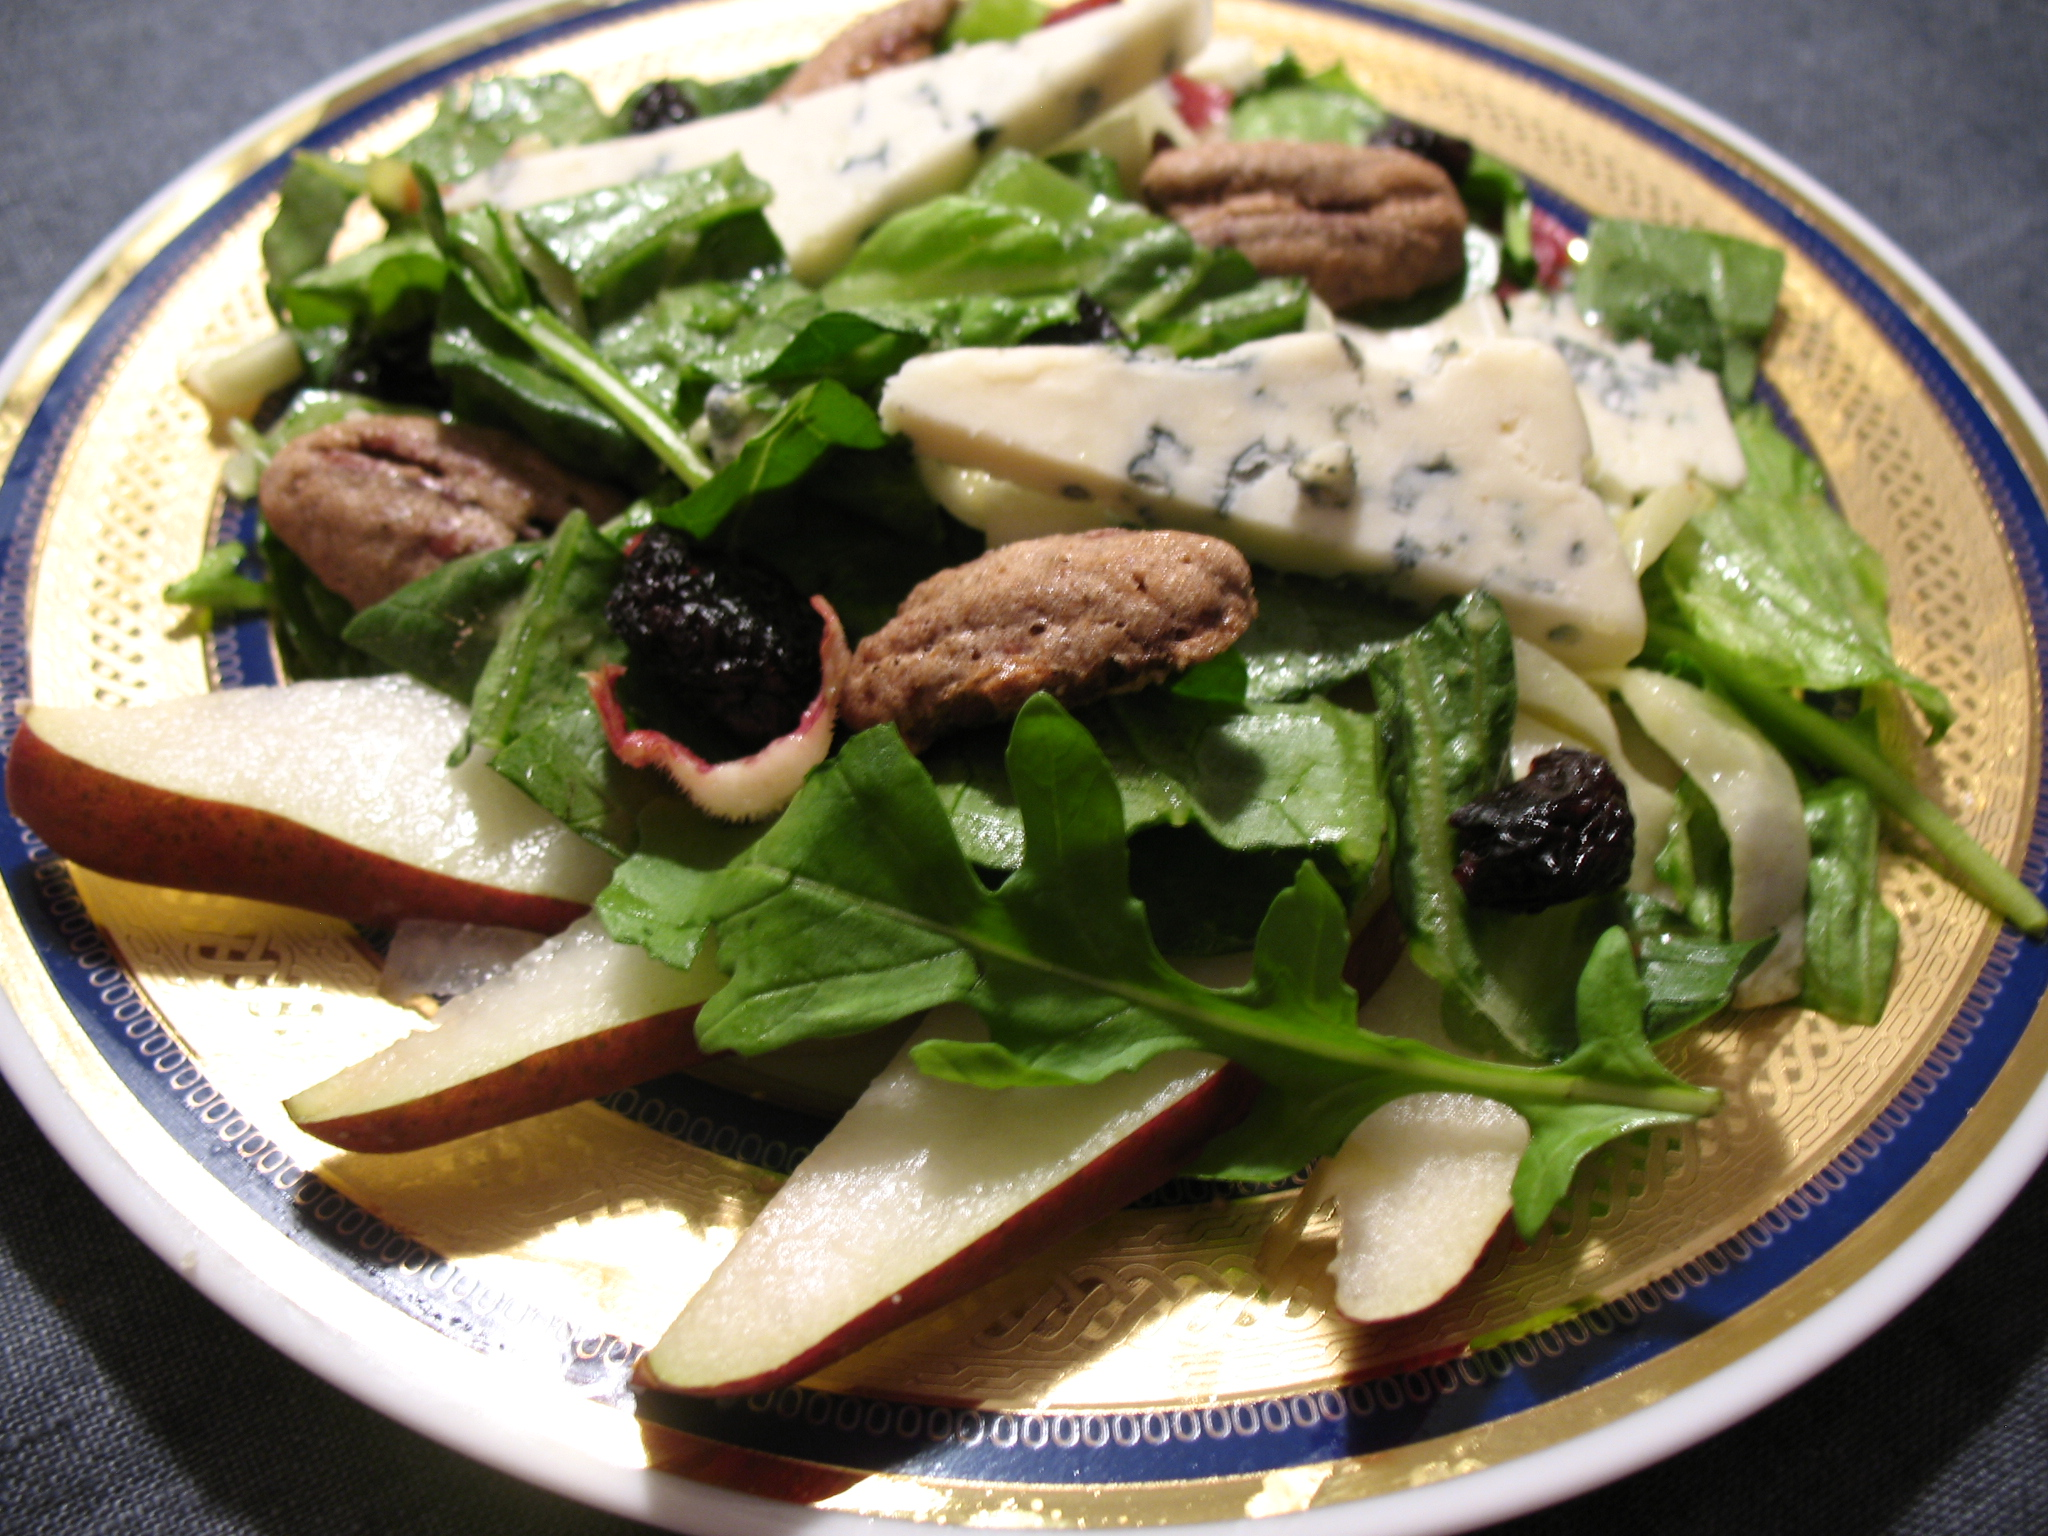 Autumn Greens with Gorgonzola, Spiced Pecans, and Roasted Garlic and Shallots Honey Mustard Dressing